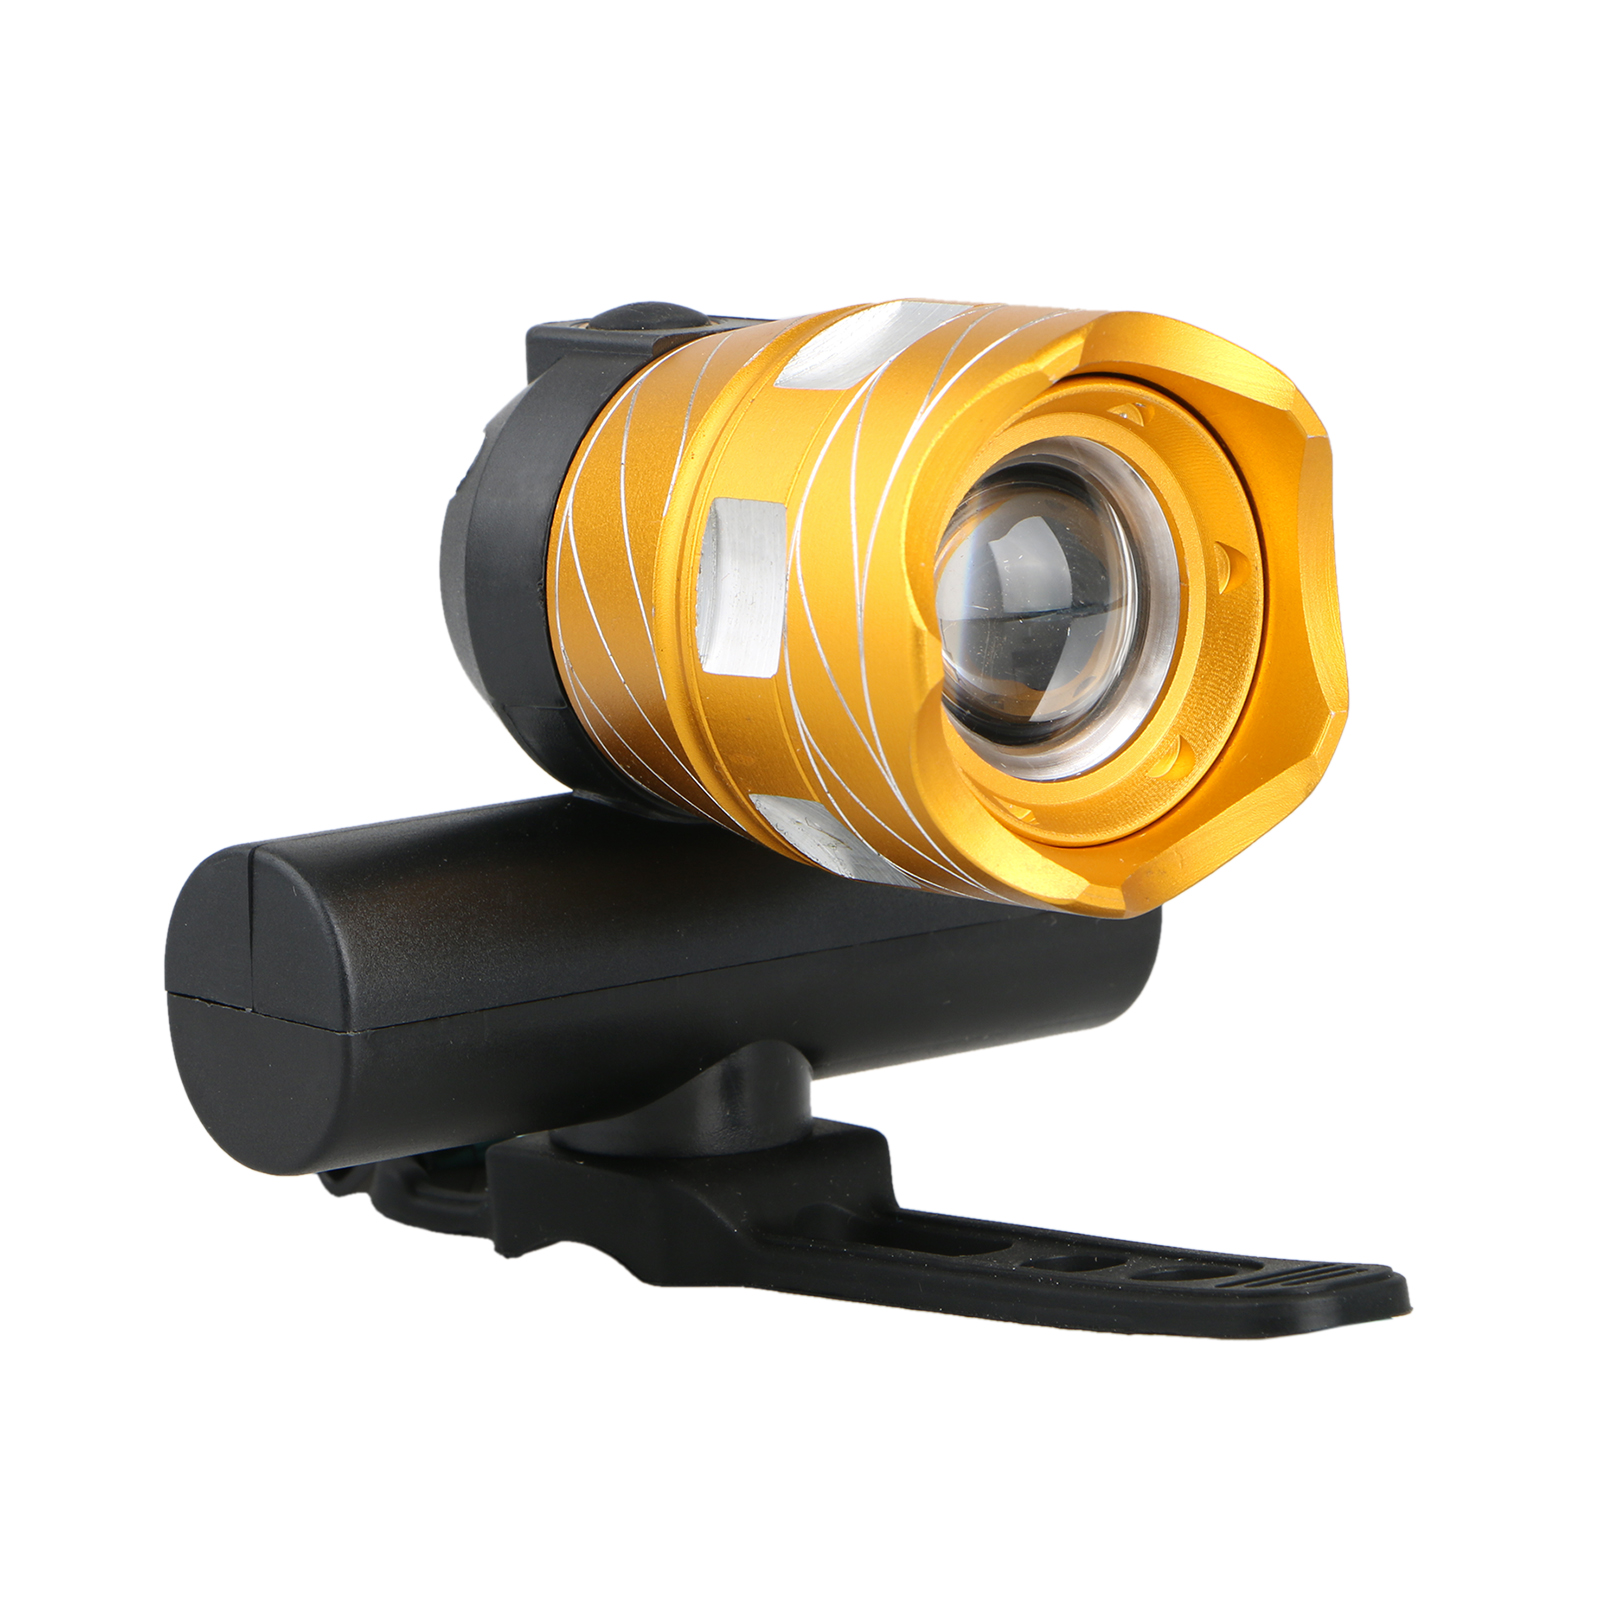 Bike T6 Headlight, Super Bright 500 Lumens CREE LED Cycling Bicycle Head Light, Waterproof Zoom Torch Lamp, with USB Cable